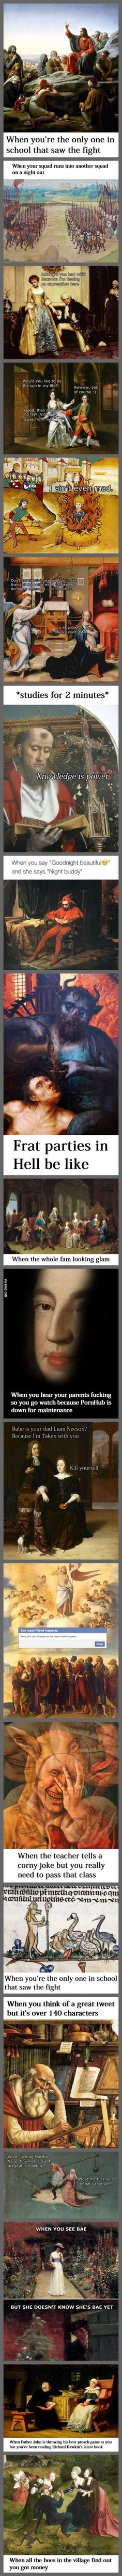 Classical Art Memes Latest (Part-13)